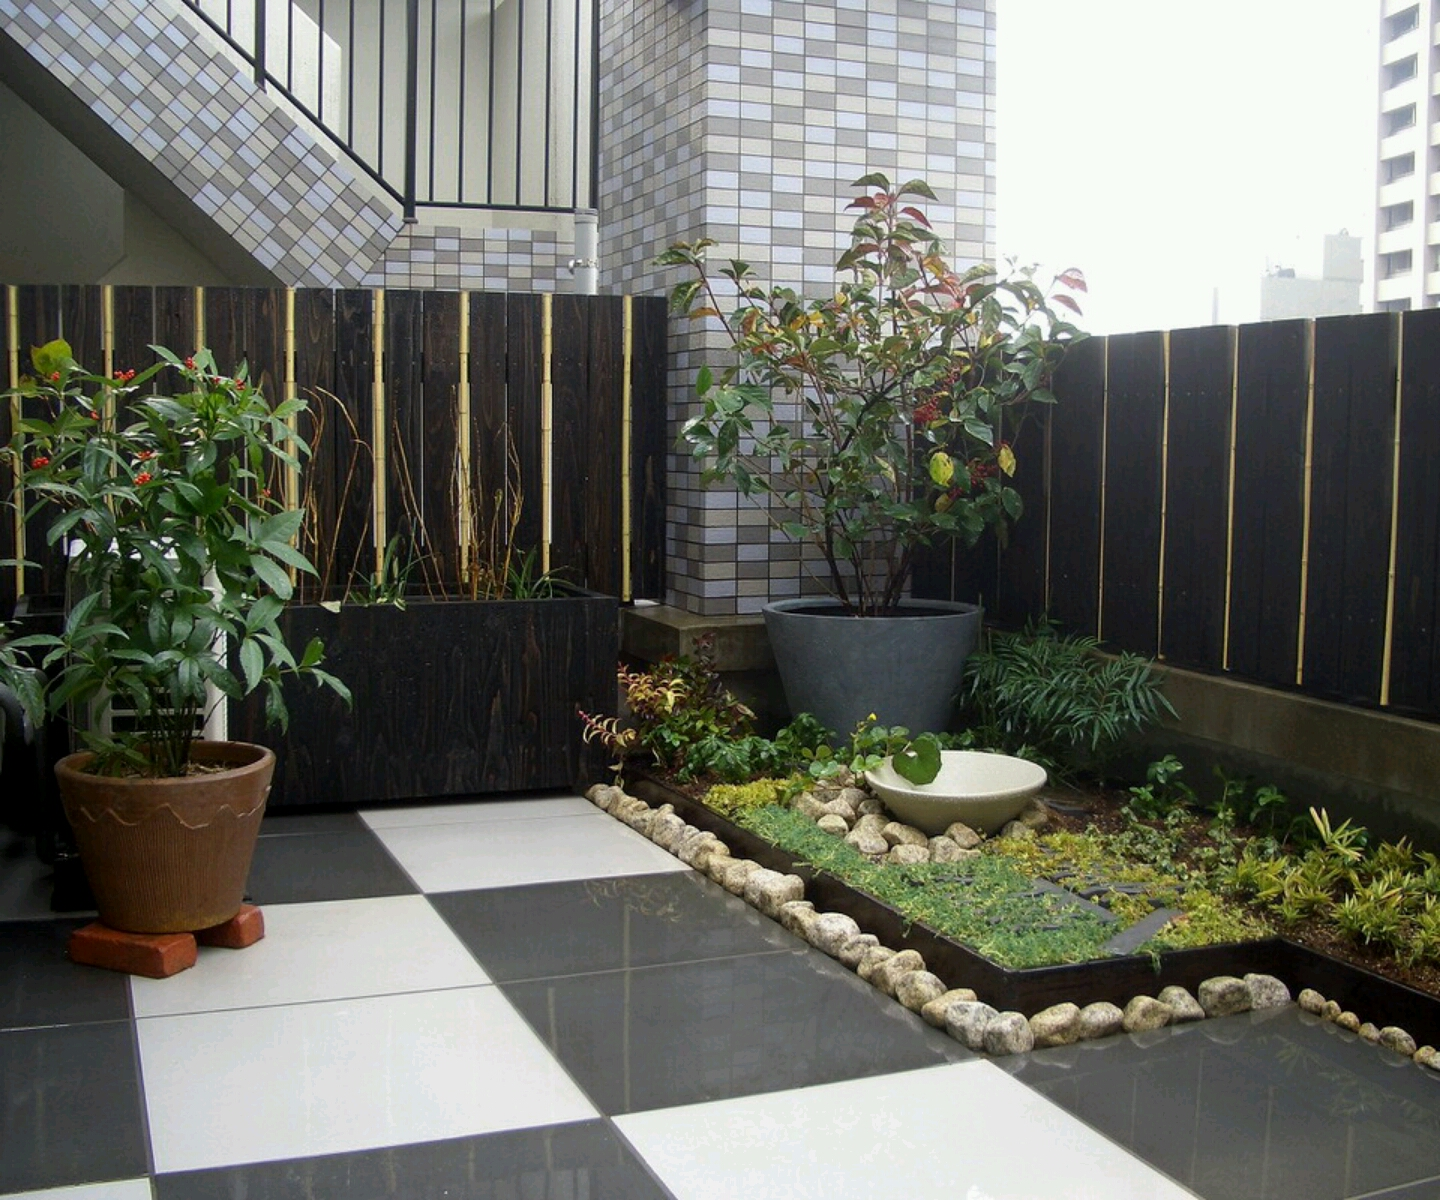 New home designs latest.: Modern homes garden designs ideas.